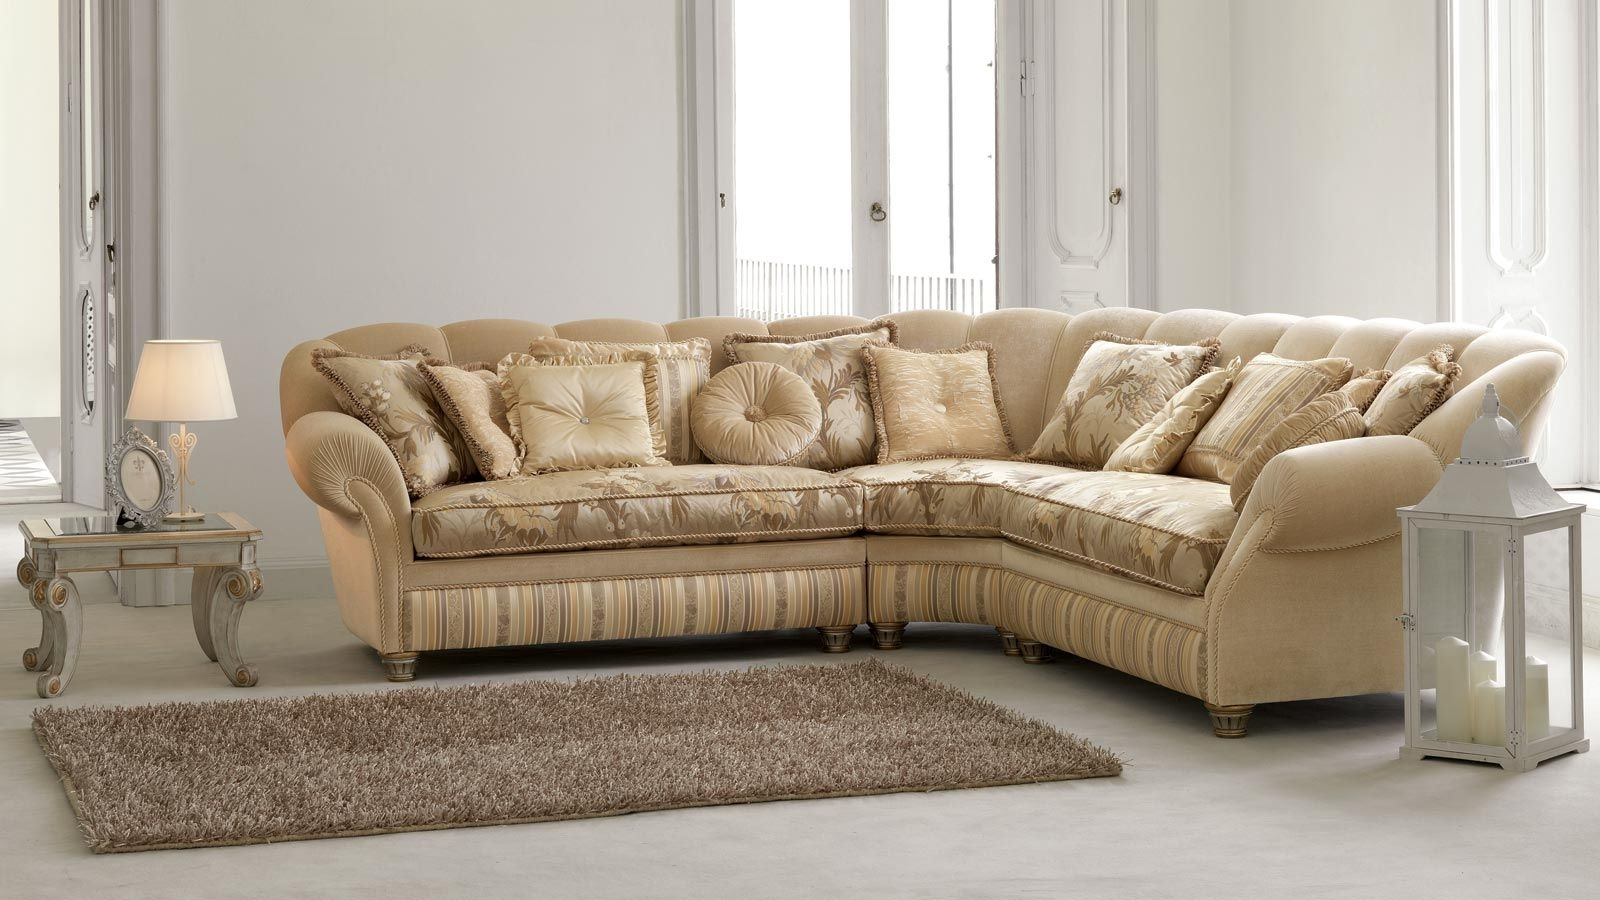 Furniture : Sectional Sofa 80 X 80 Corner Sofa Extension Sectional With Regard To Most Up To Date 100x80 Sectional Sofas (View 19 of 20)